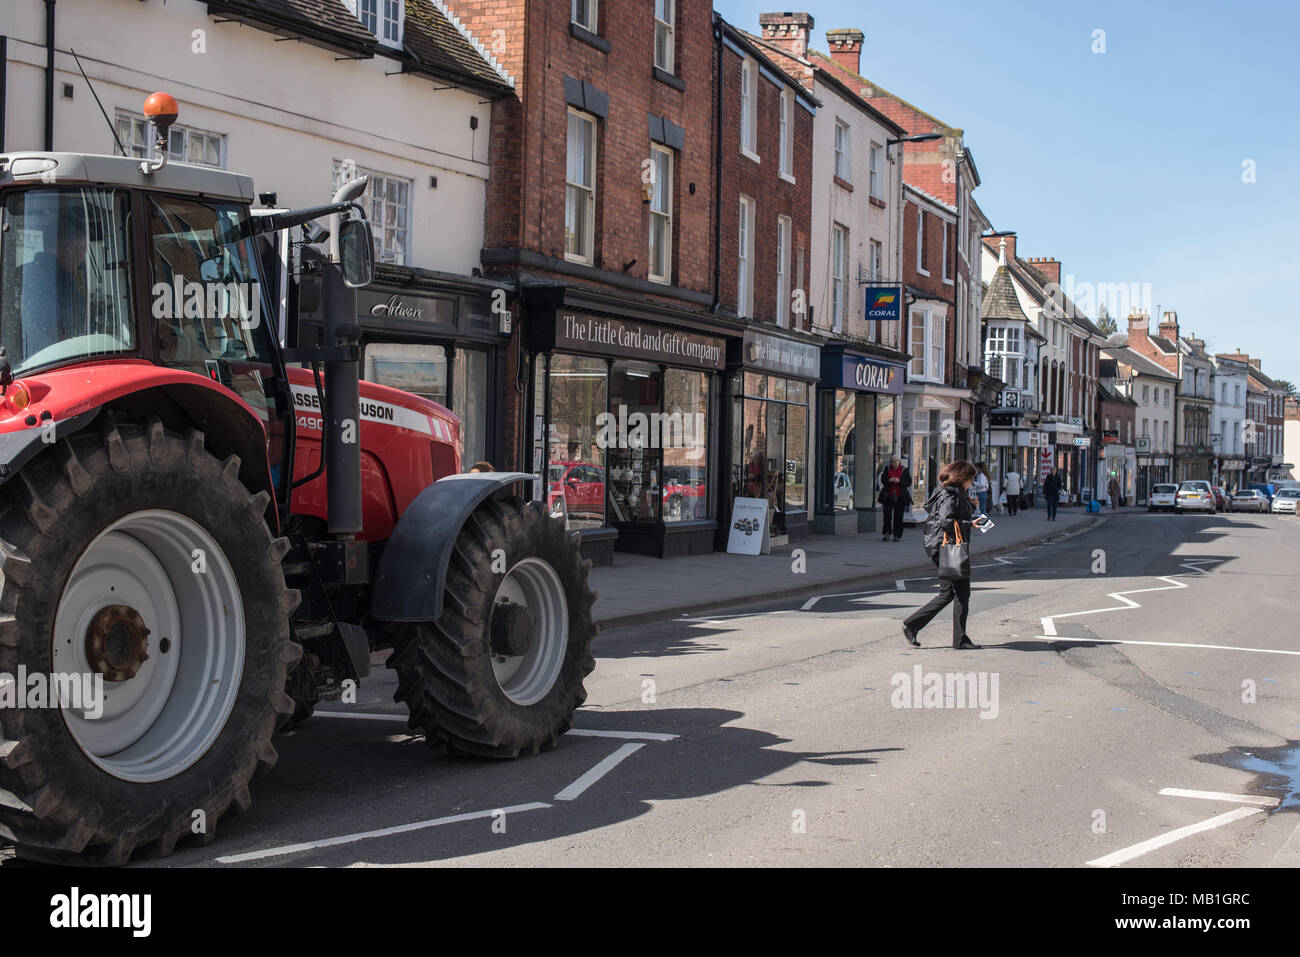 A women crosses the road in Newport, Shropshire whilst a farmers tractor  waits patiently for her to cross the road in the sunshine - Stock Image